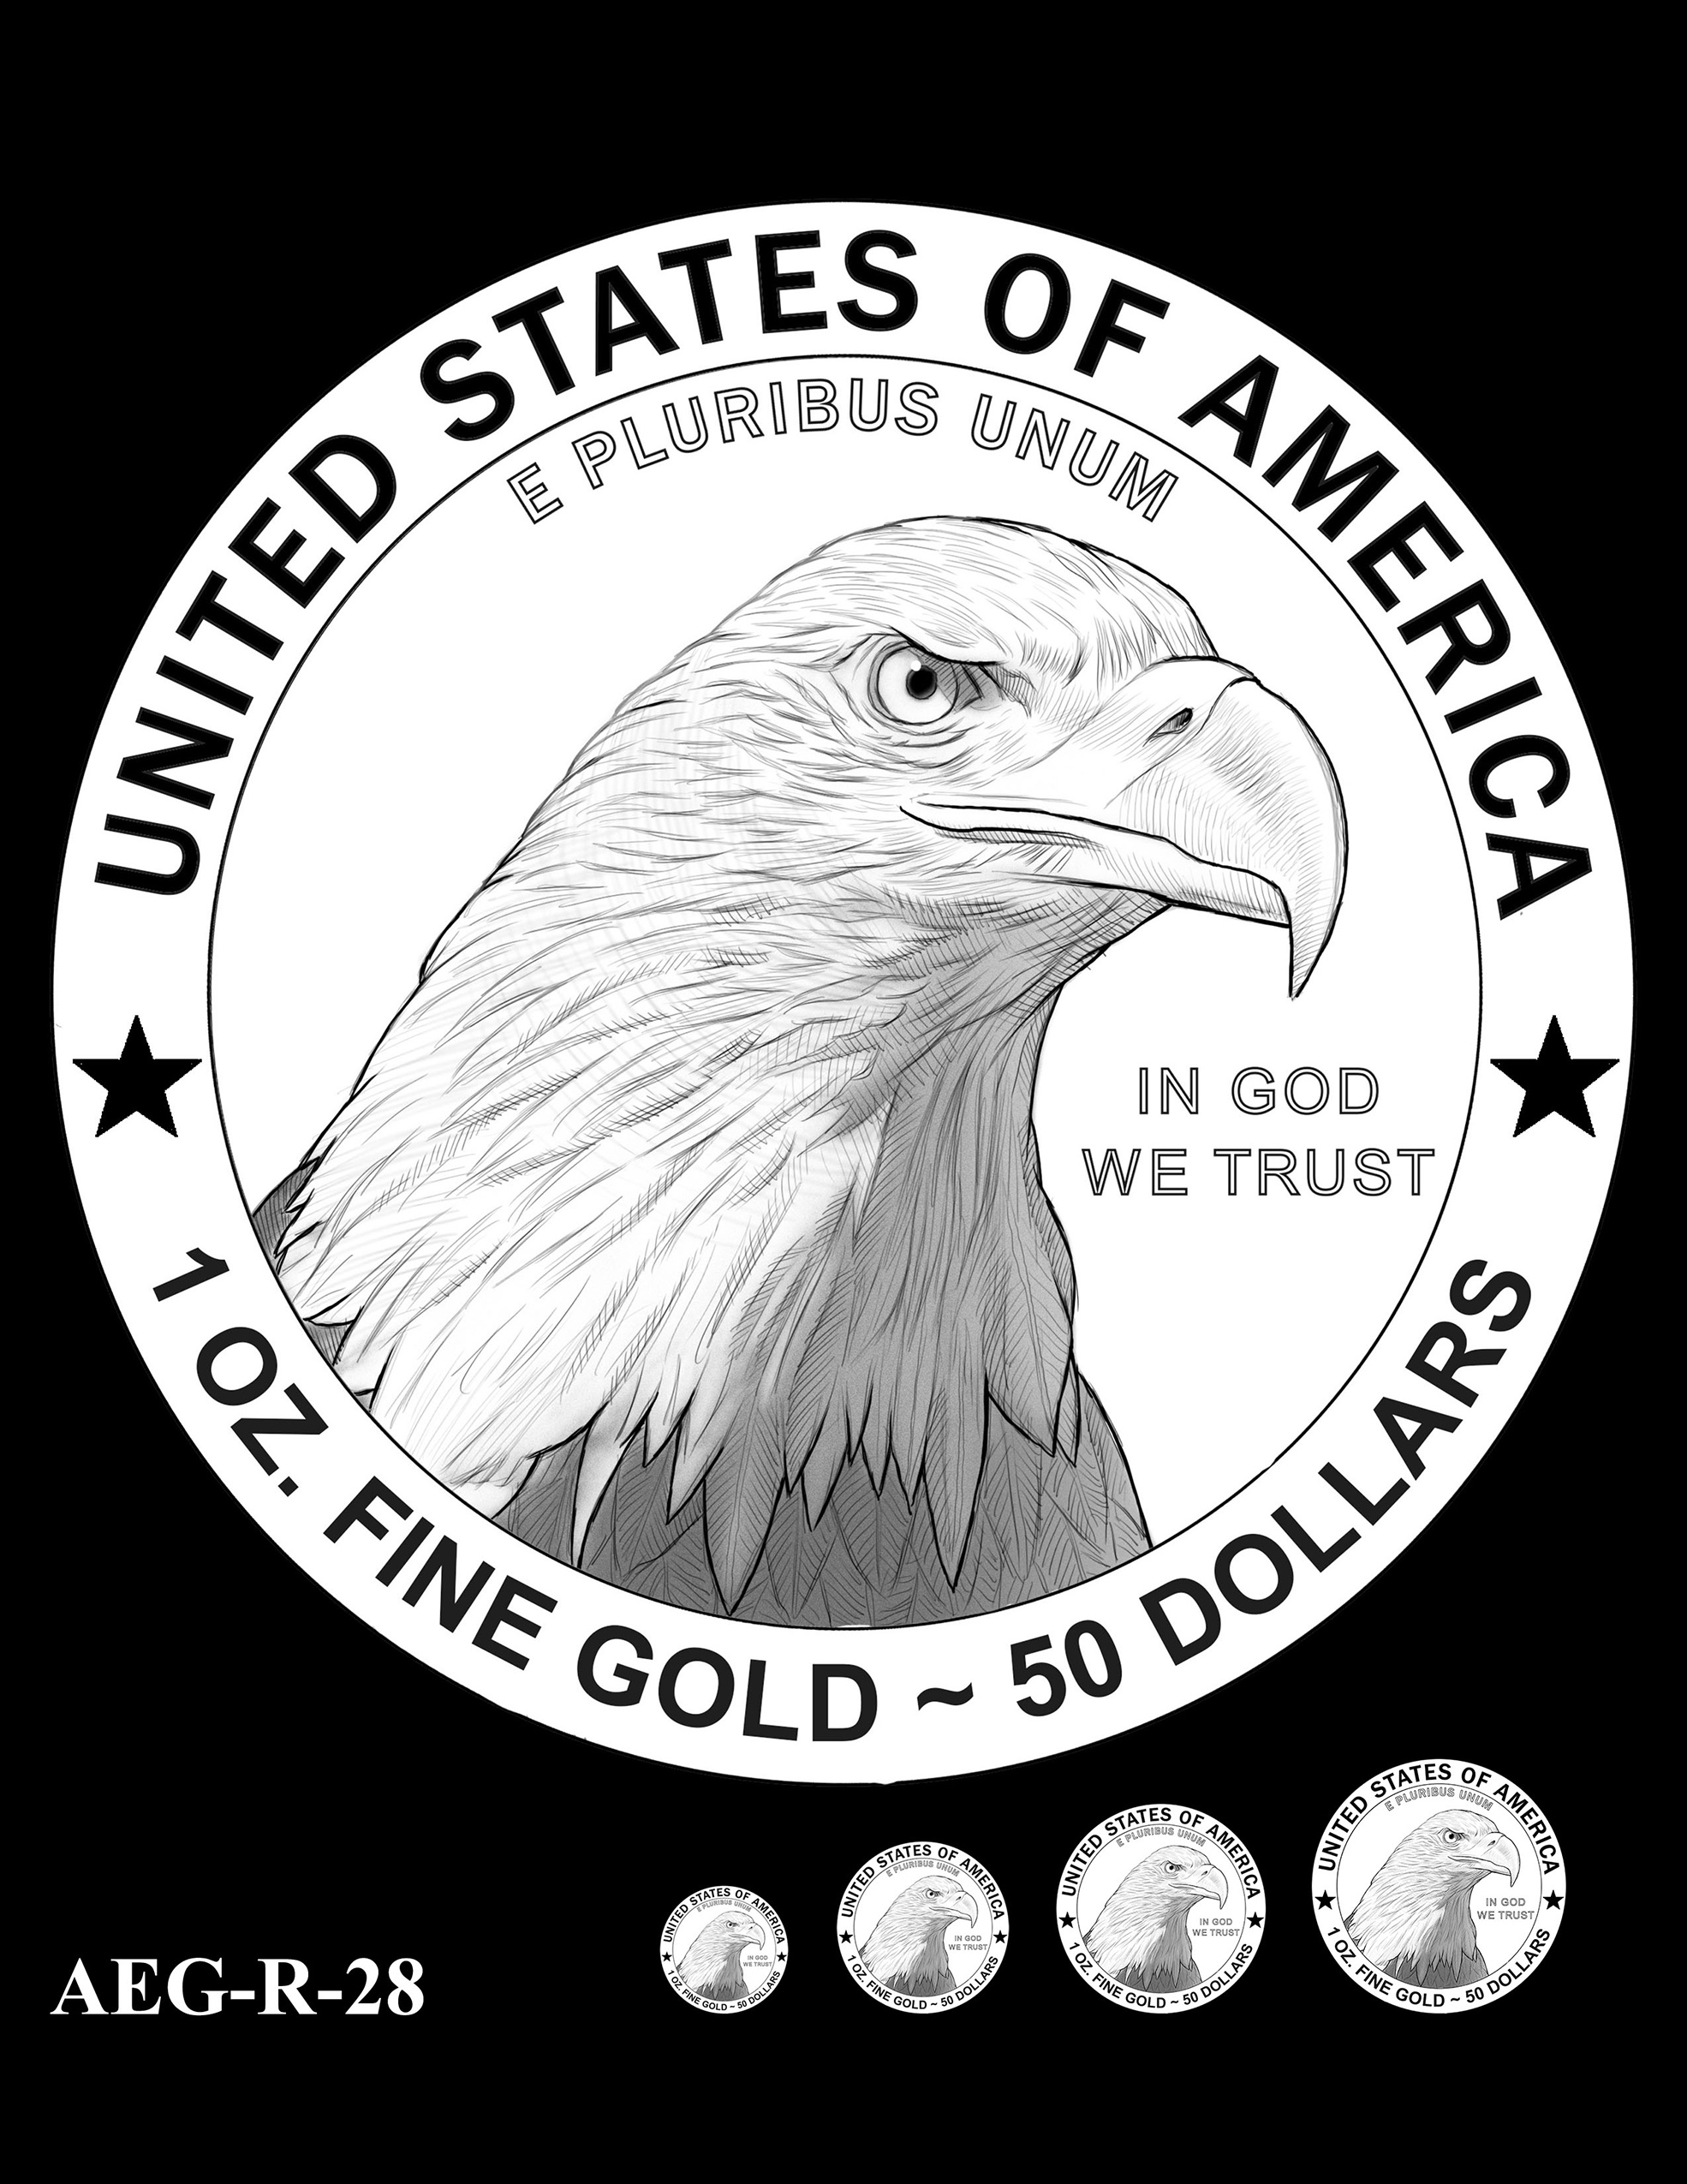 AEG-R-28 -- American Eagle Proof and Bullion Gold Coin - Reverse